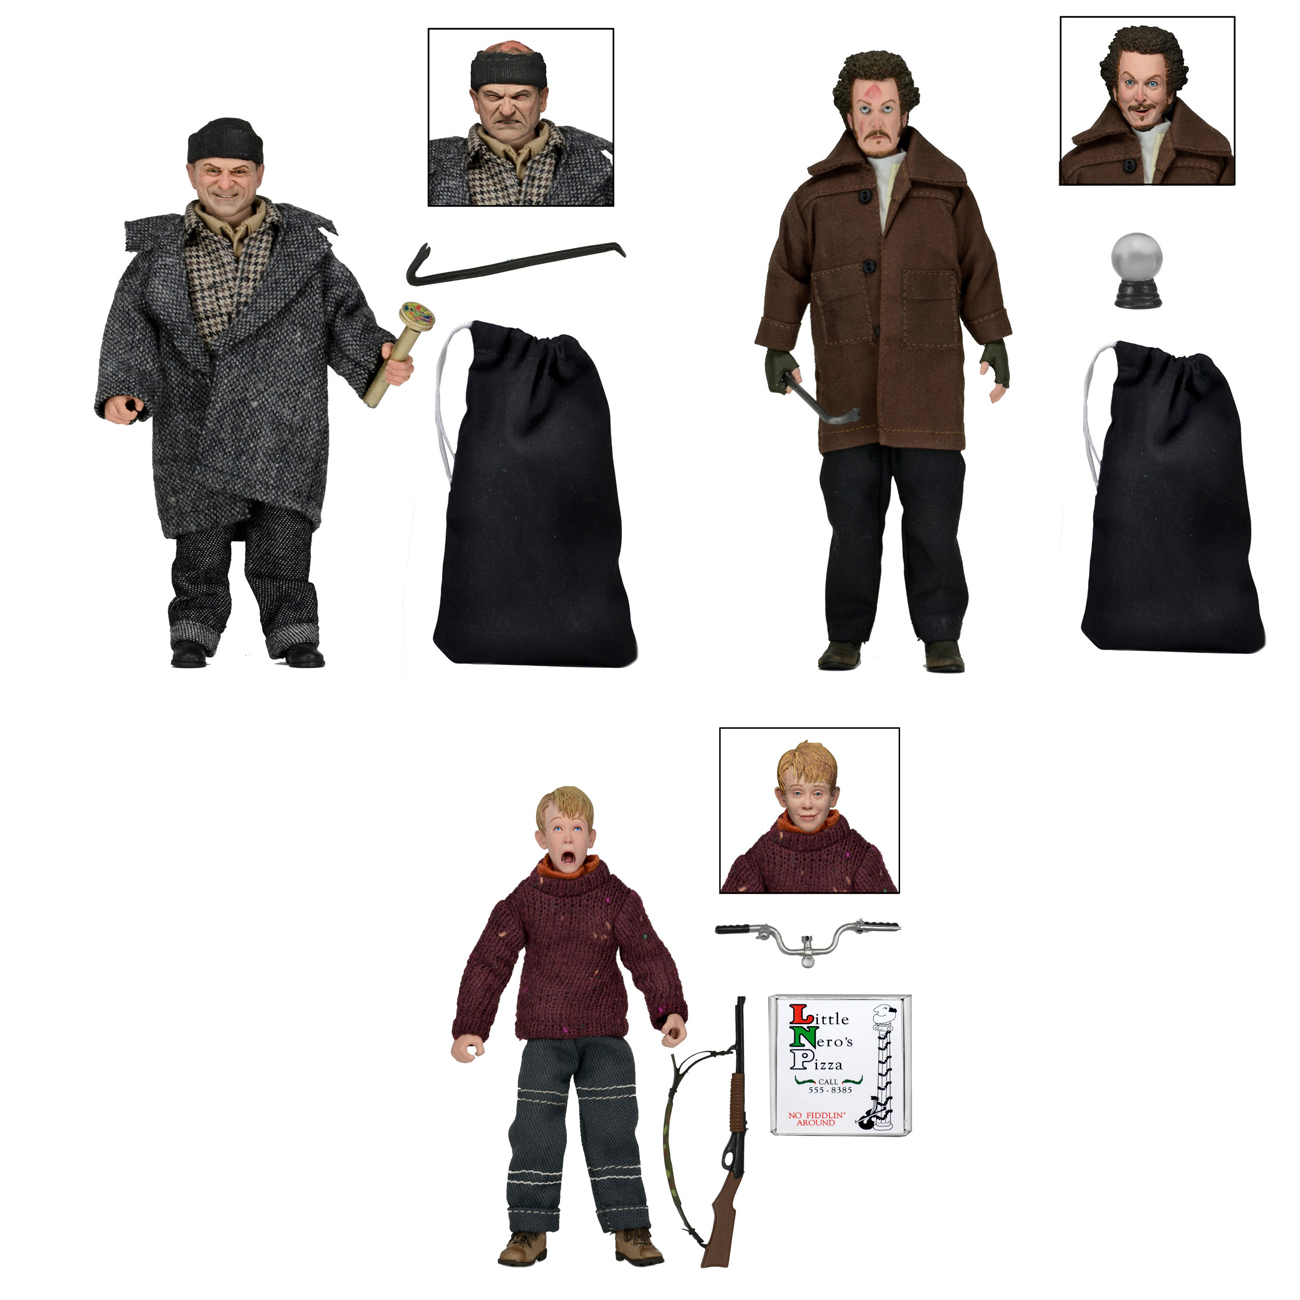 NECA Toys Re-Lists Home Alone 8″ Retro Style Clothed Figures On Amazon & eBay Storefronts